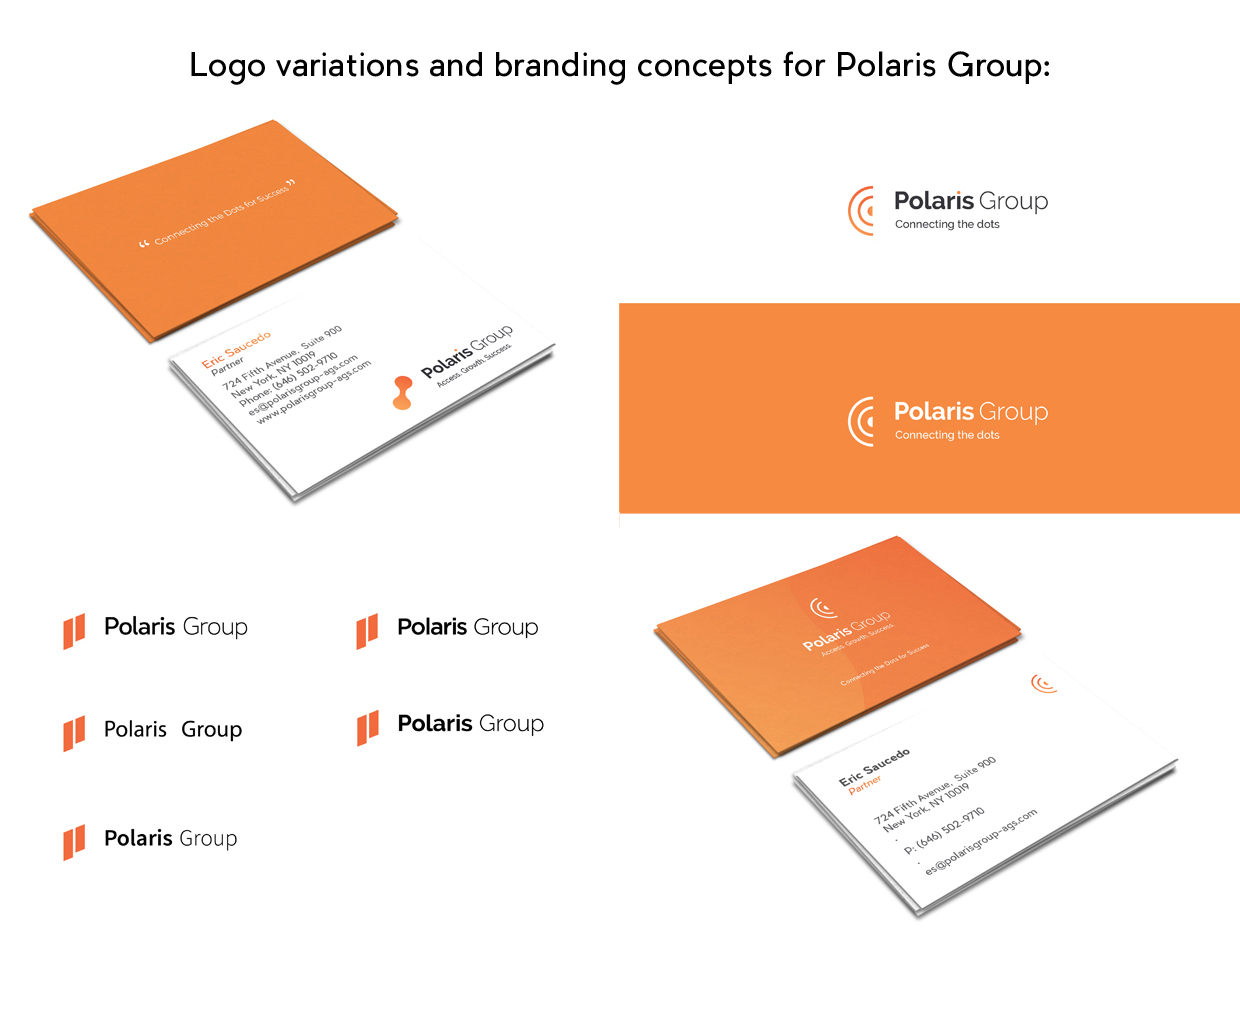 The Polaris Group